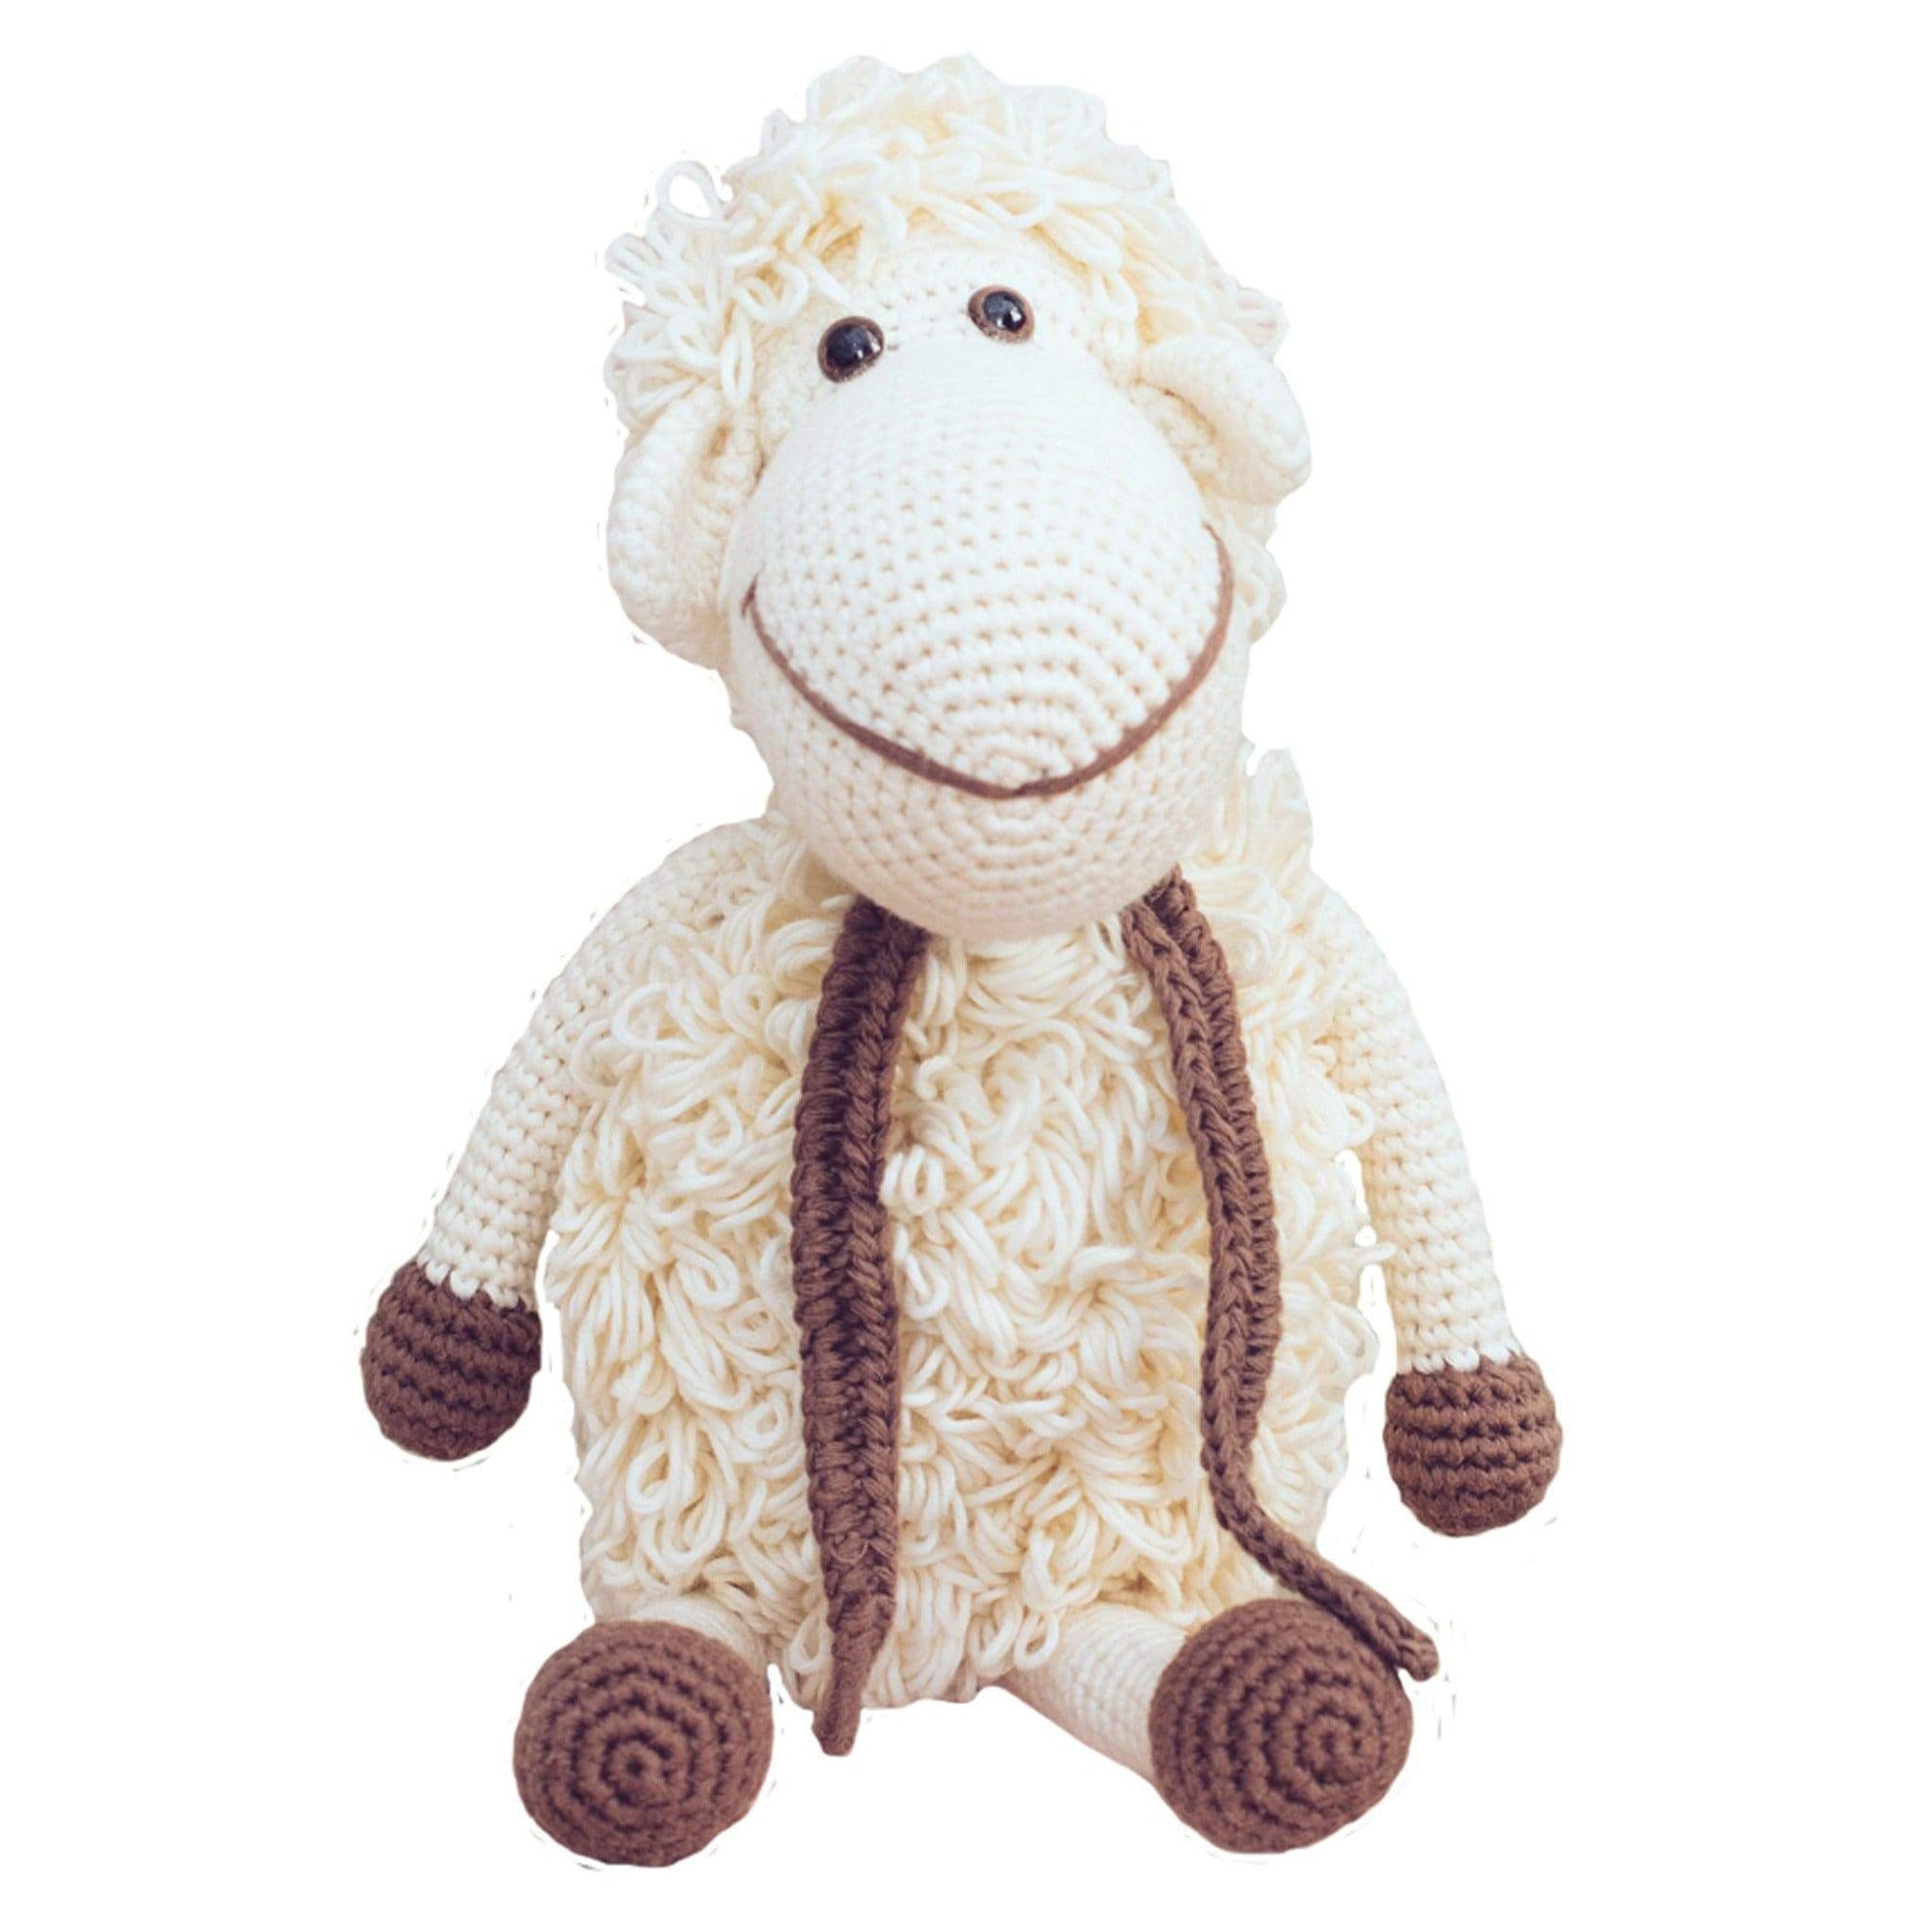 bebemoss.com stuffed animal Darla the sheep - white handmade by moms  gifts with purpose